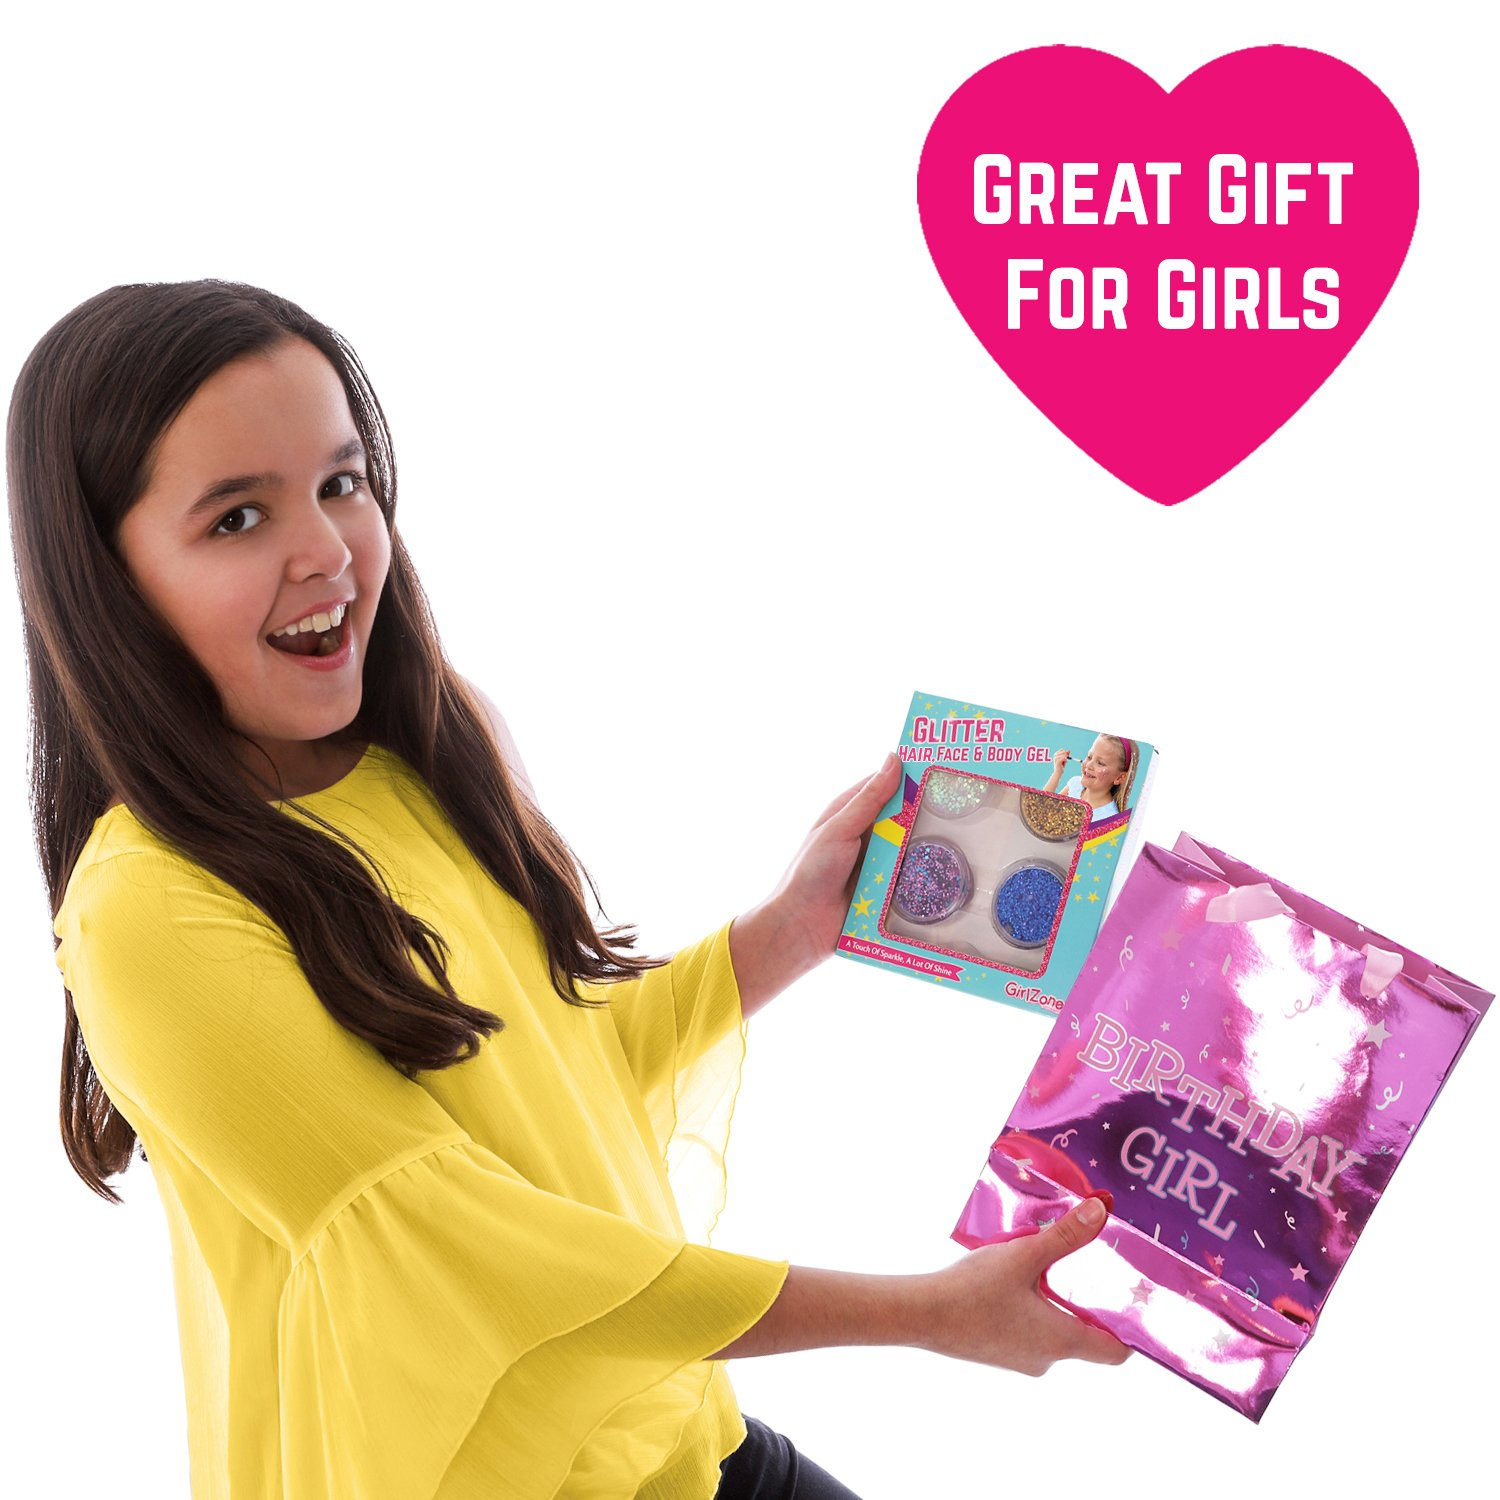 GirlZone GIFTS FOR GIRLS: Face, Hair & Body Cosmetic Glitter Makeup. Great Gift, Birthday Present Idea For Girls 4 5 6 7 8 9 10 years old plus. by GirlZone (Image #6)